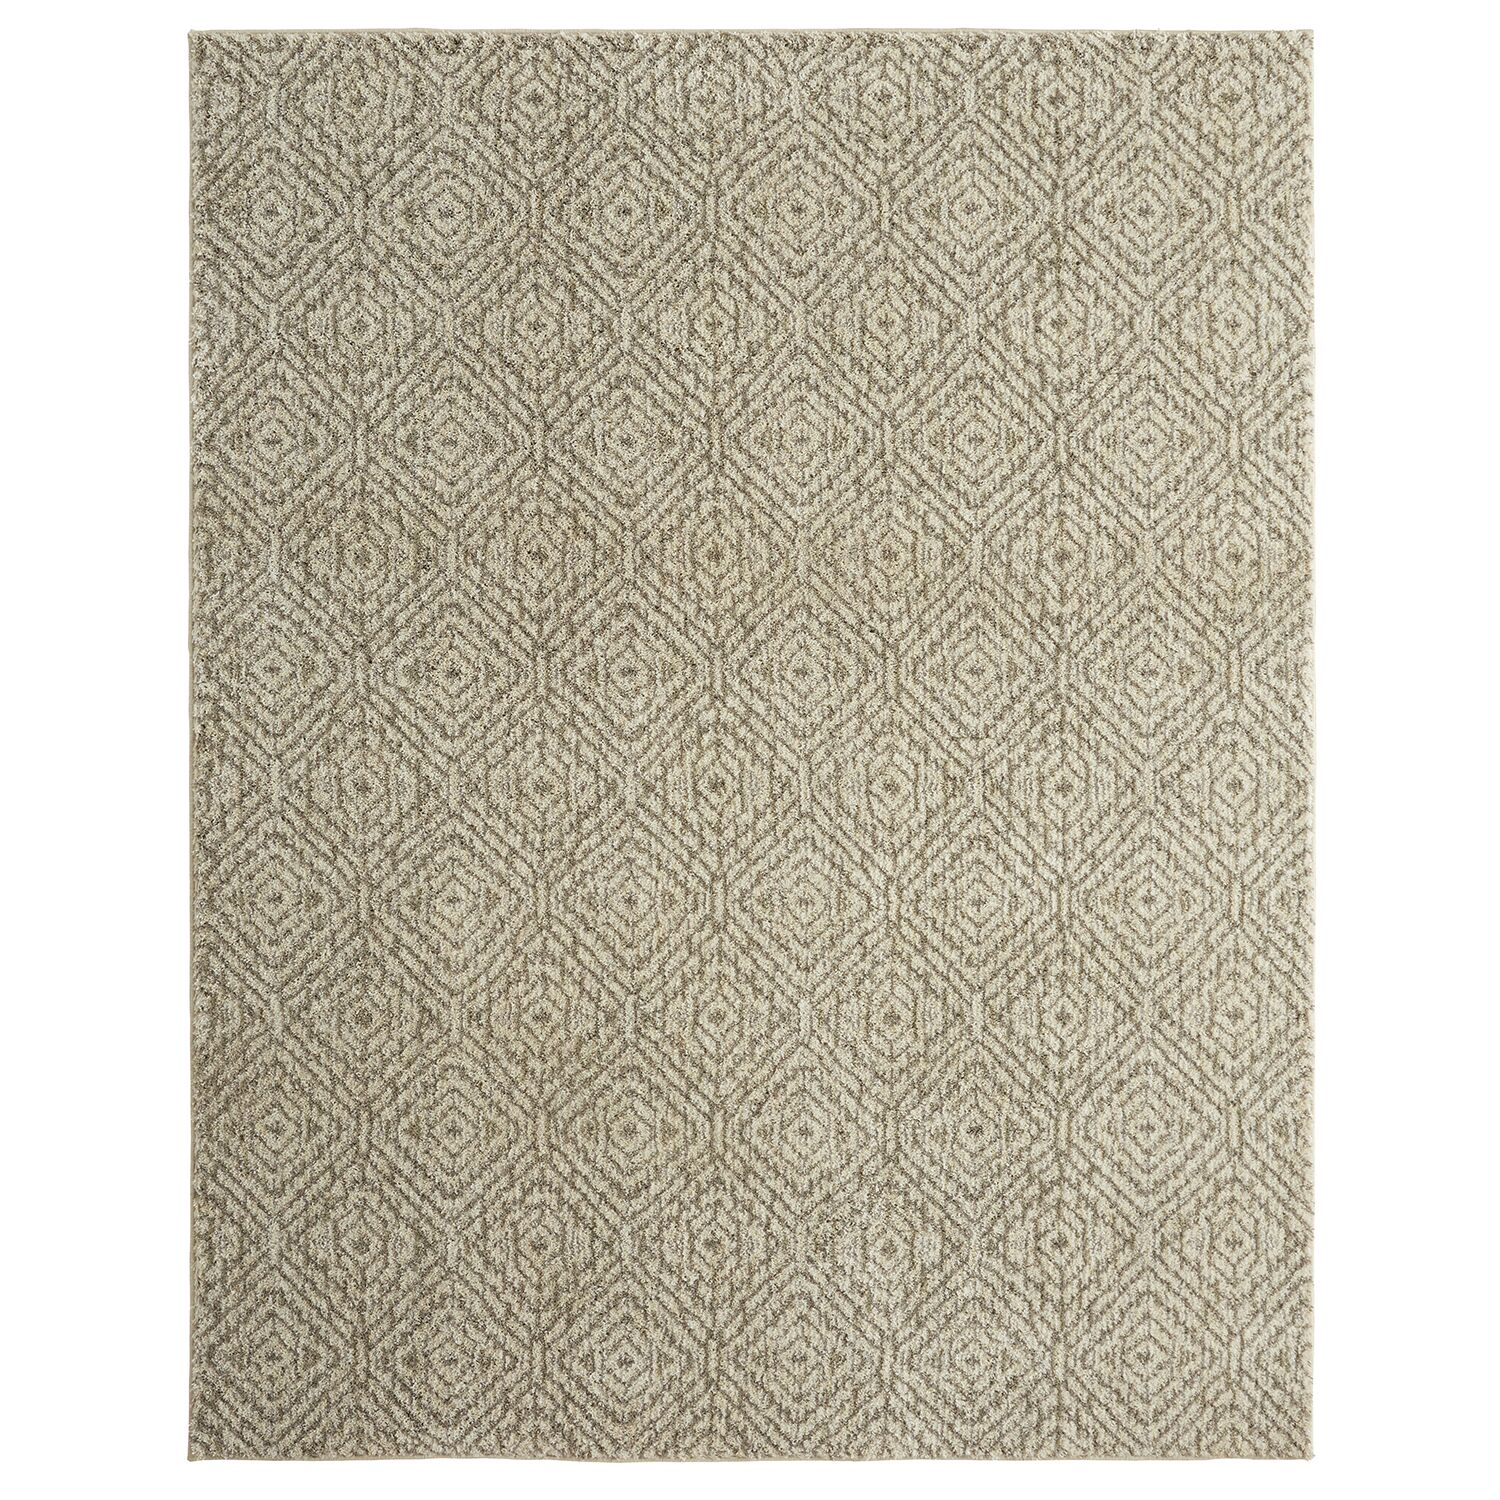 Cavanaville Gray Area Rug Rug Size: Rectangle 8' x 10'